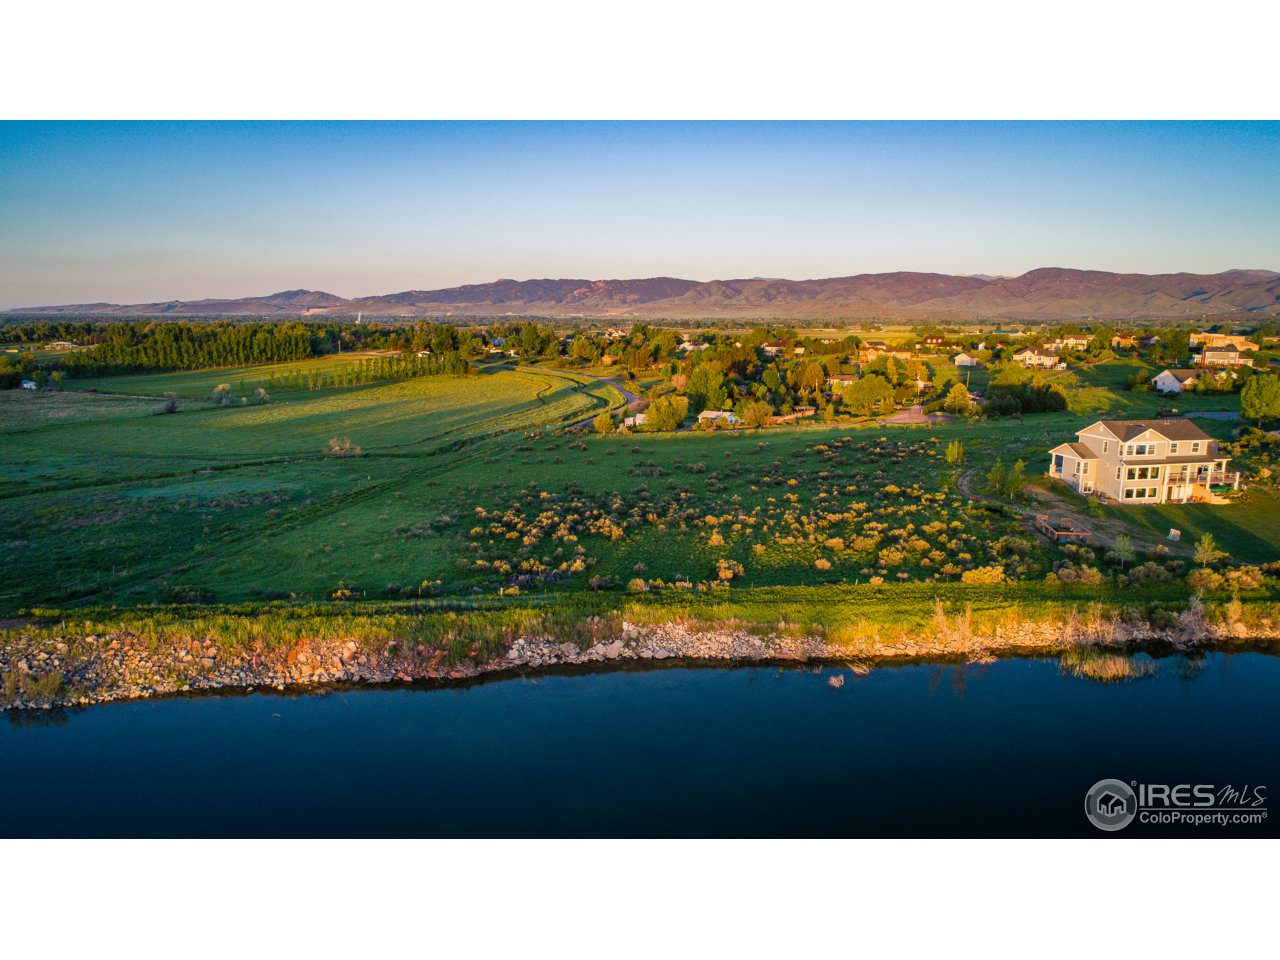 This beautiful 4 acre lot is located at the southern edge of a private Reservoir, giving you a stunning tri view of Terry Lake, the Rocky Mountains and the Reservoir.  Only a 10 minute drive into town.  This south facing plot allows for amazing sunrise and sunset views!! Plenty of open space from all directions.  Water tap included (worth $70,000) in the sale of this property. Potential inclusion of reservoir for recreational use.  A must see!